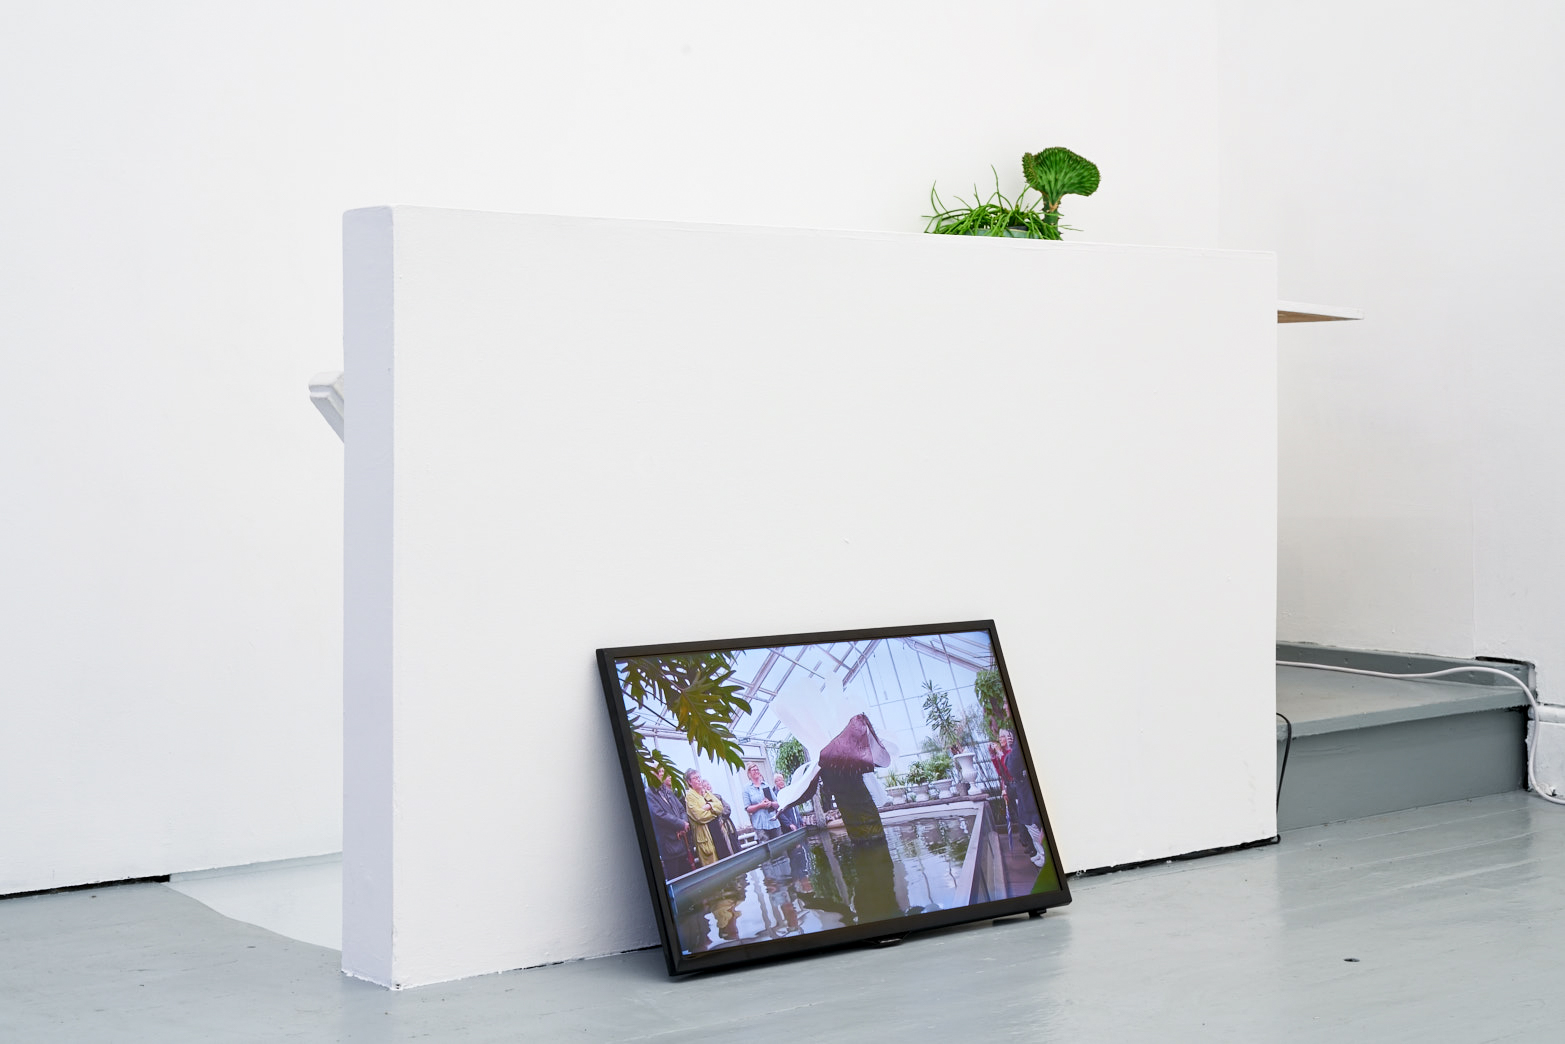 Becoming Plant, installation view